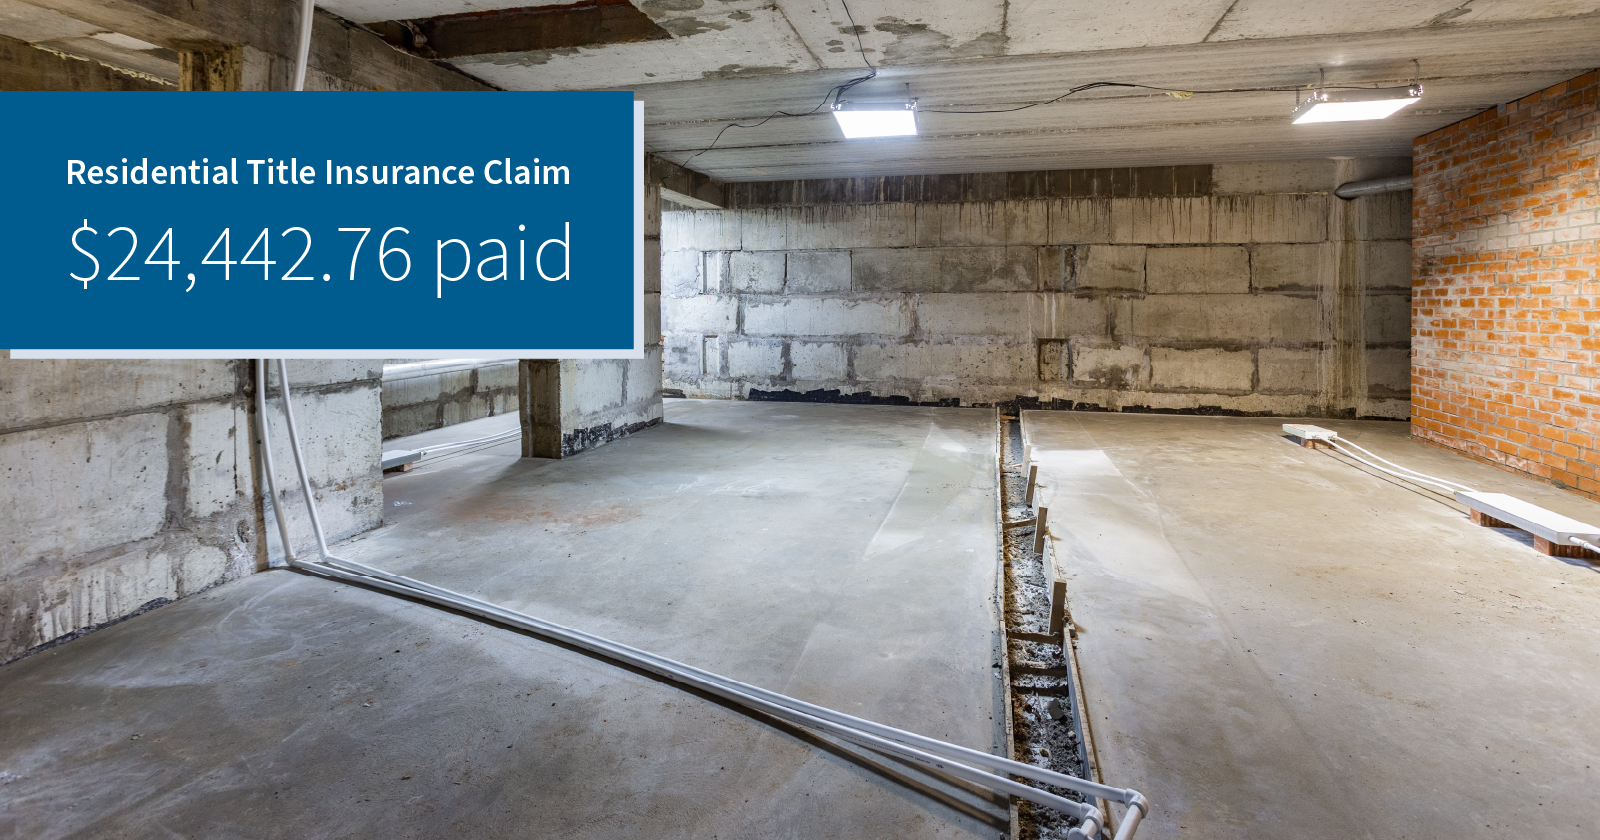 photo of an unfinished basement with concrete walls and floor. Caption: Residential Title Insurance Claim $24,442.76 paid